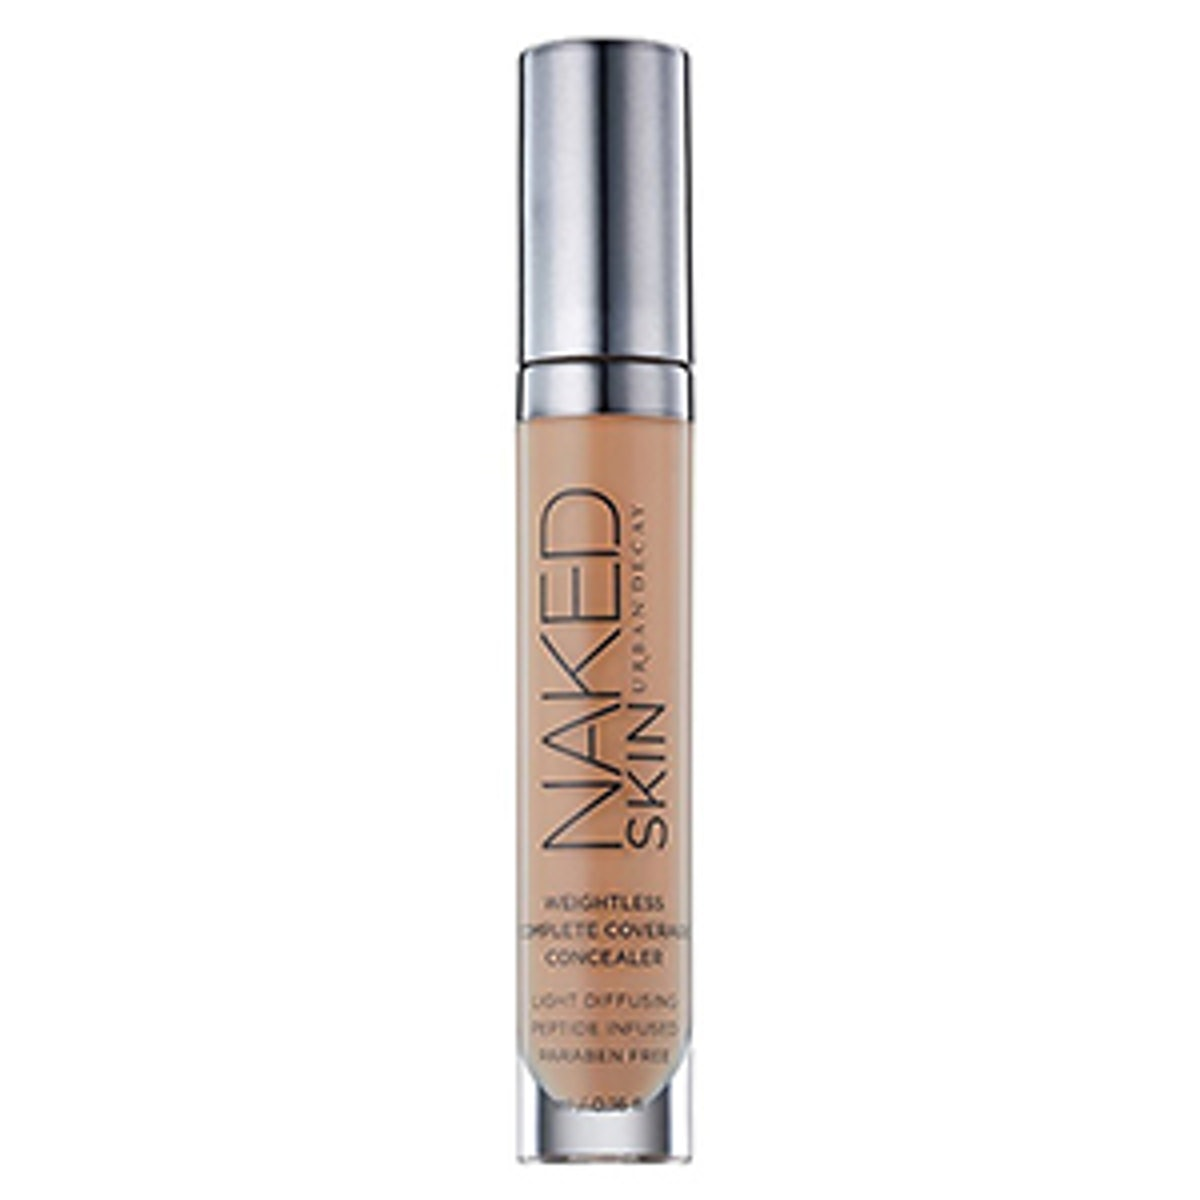 Urban Decay Naked Skin Weightless Complete Coverage Concealer,